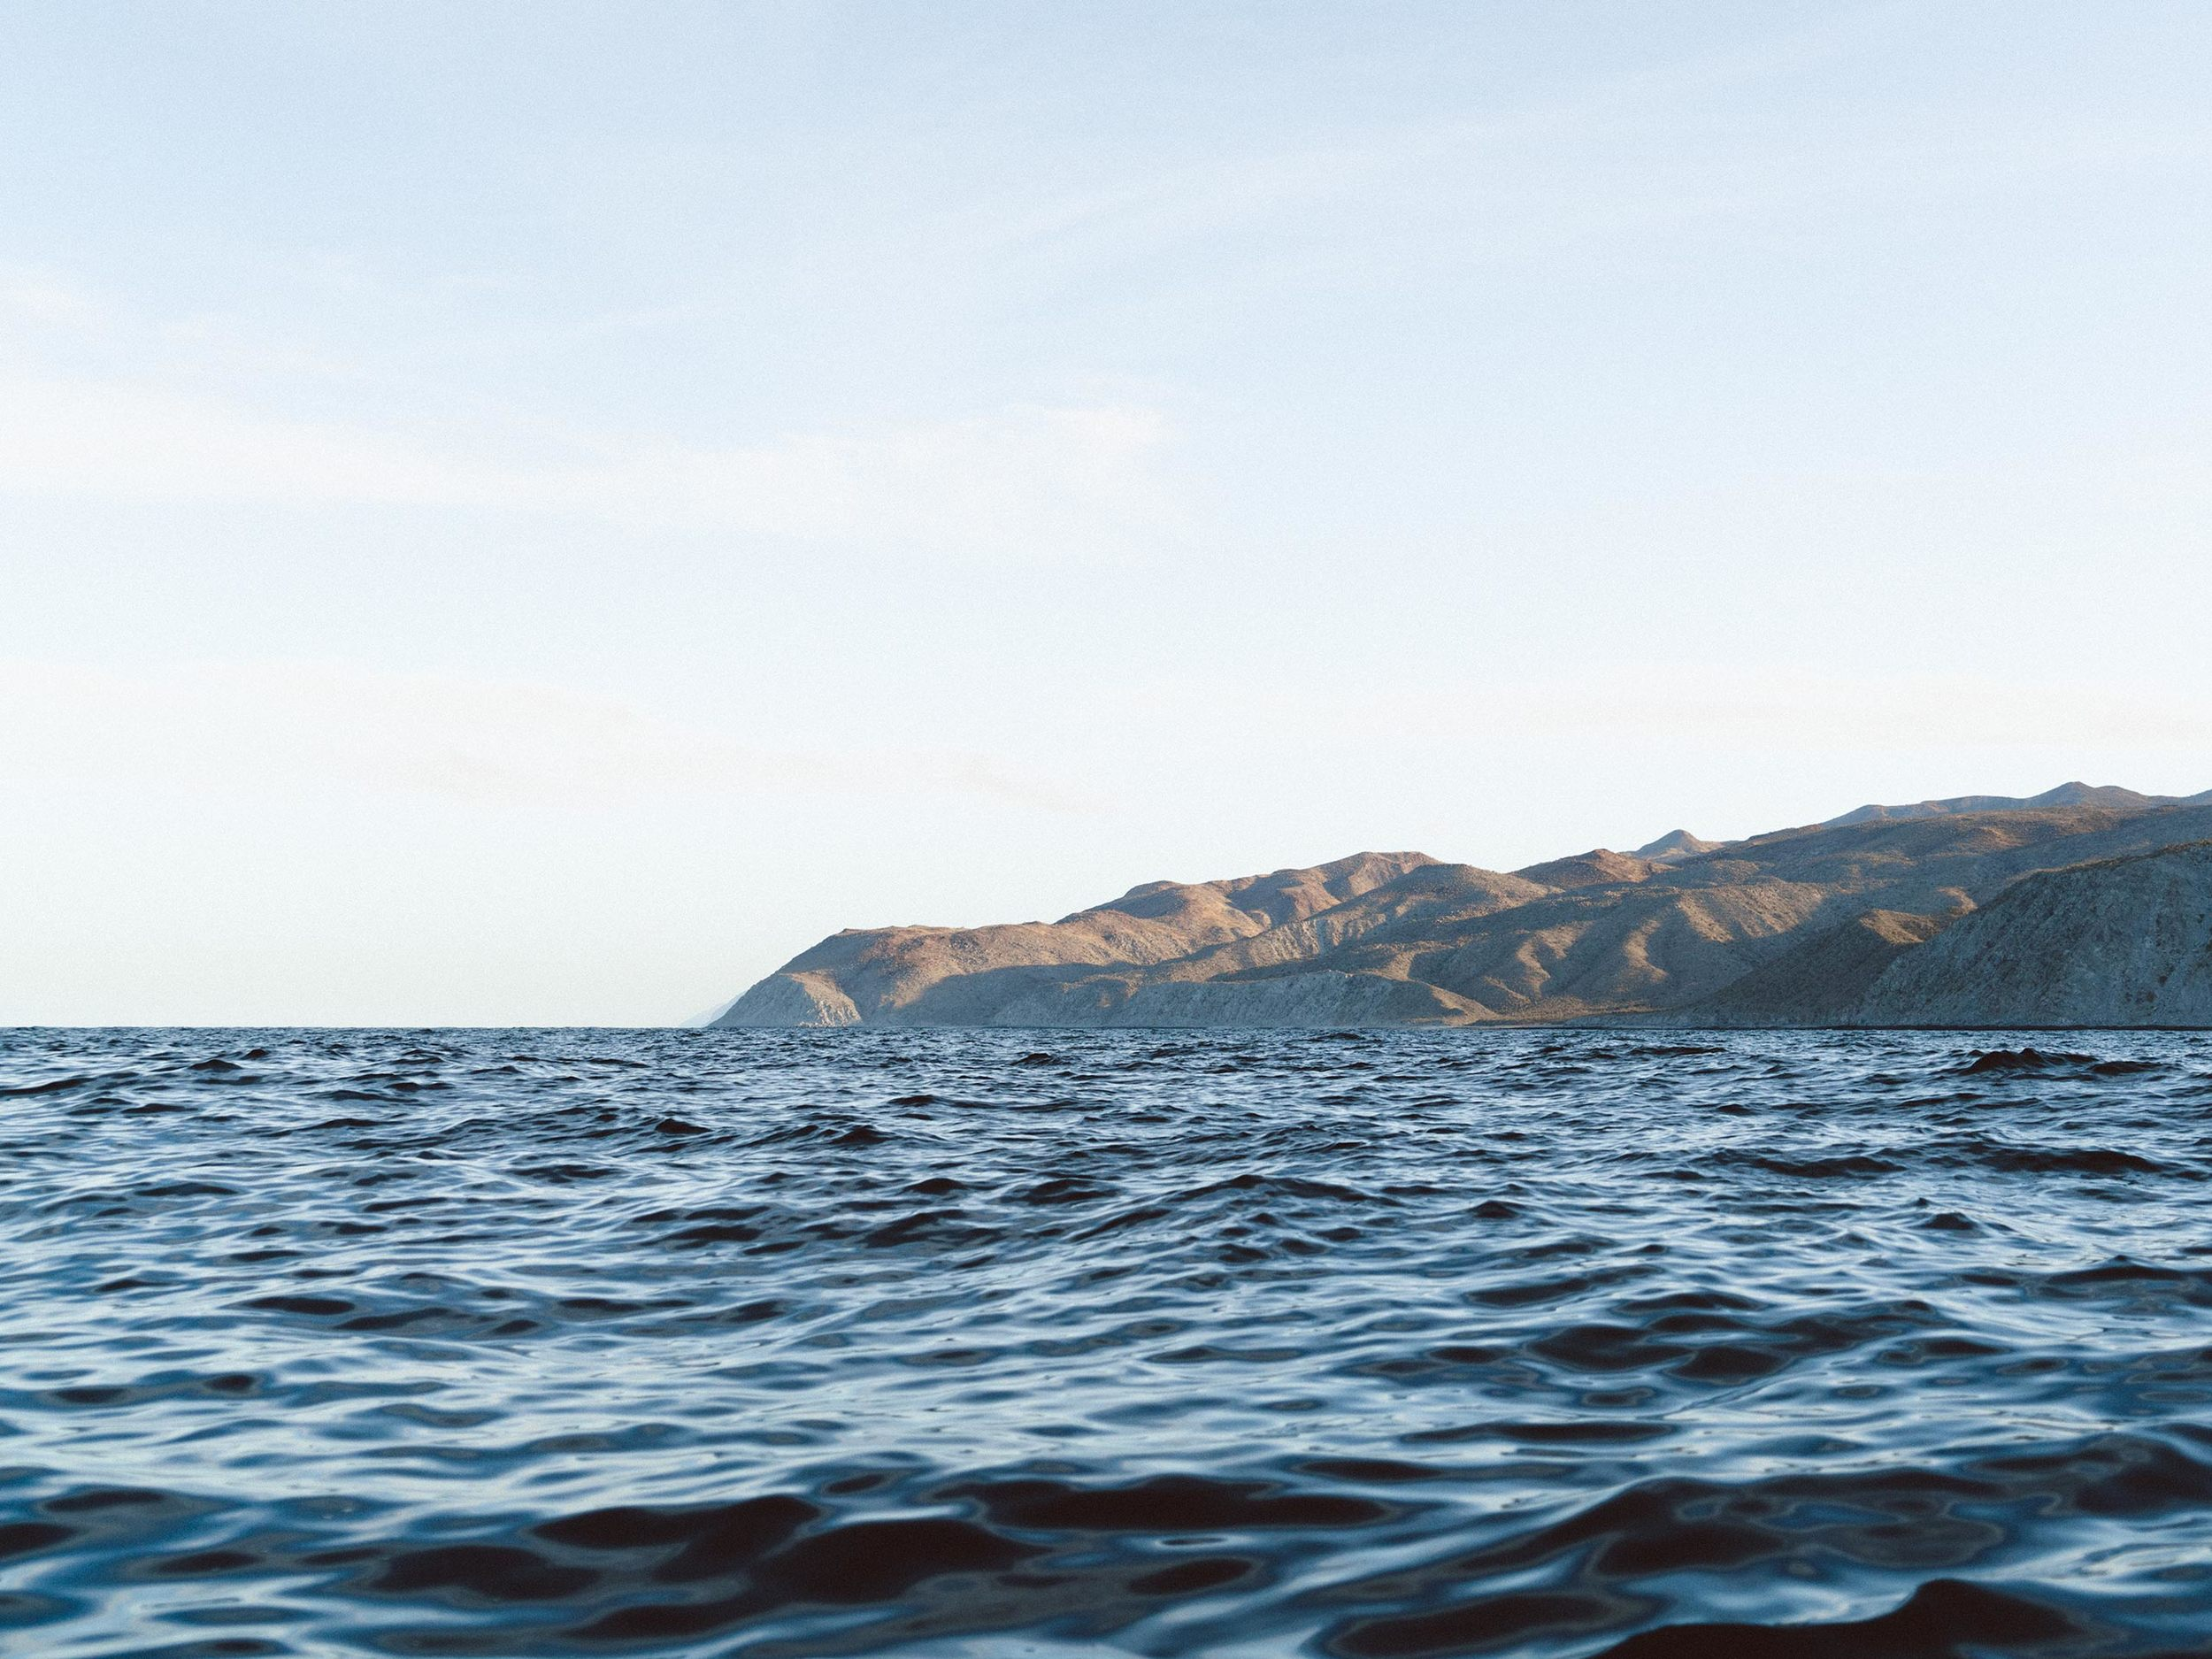 Rugged coastline, 0 humans, and endless fishable water.